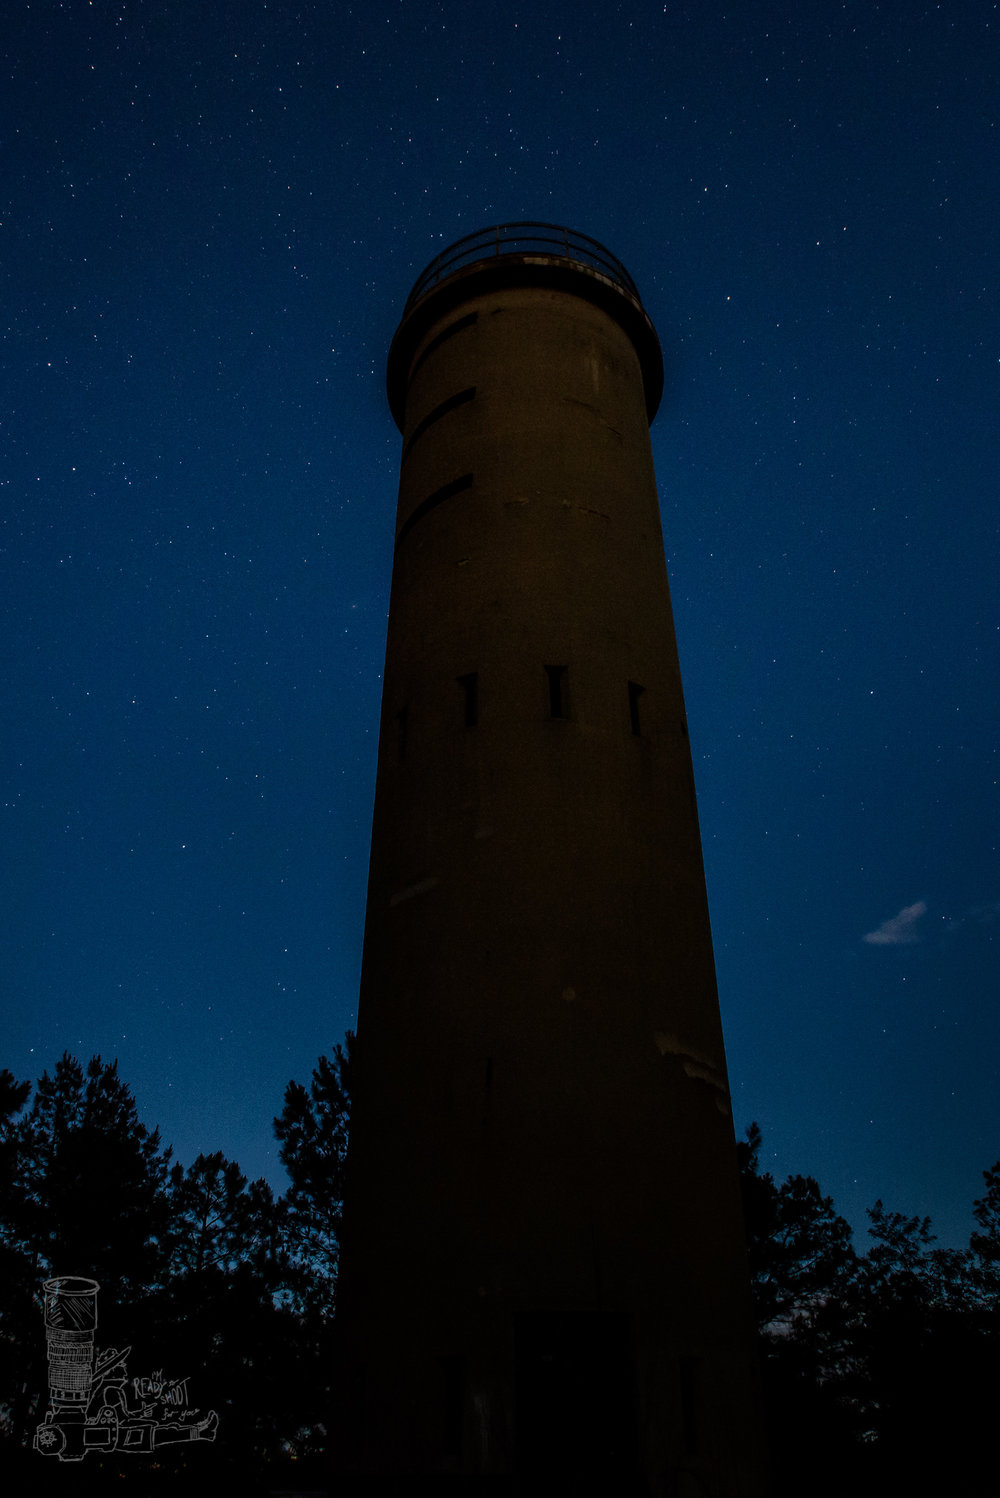 Nighttime at the Tower II